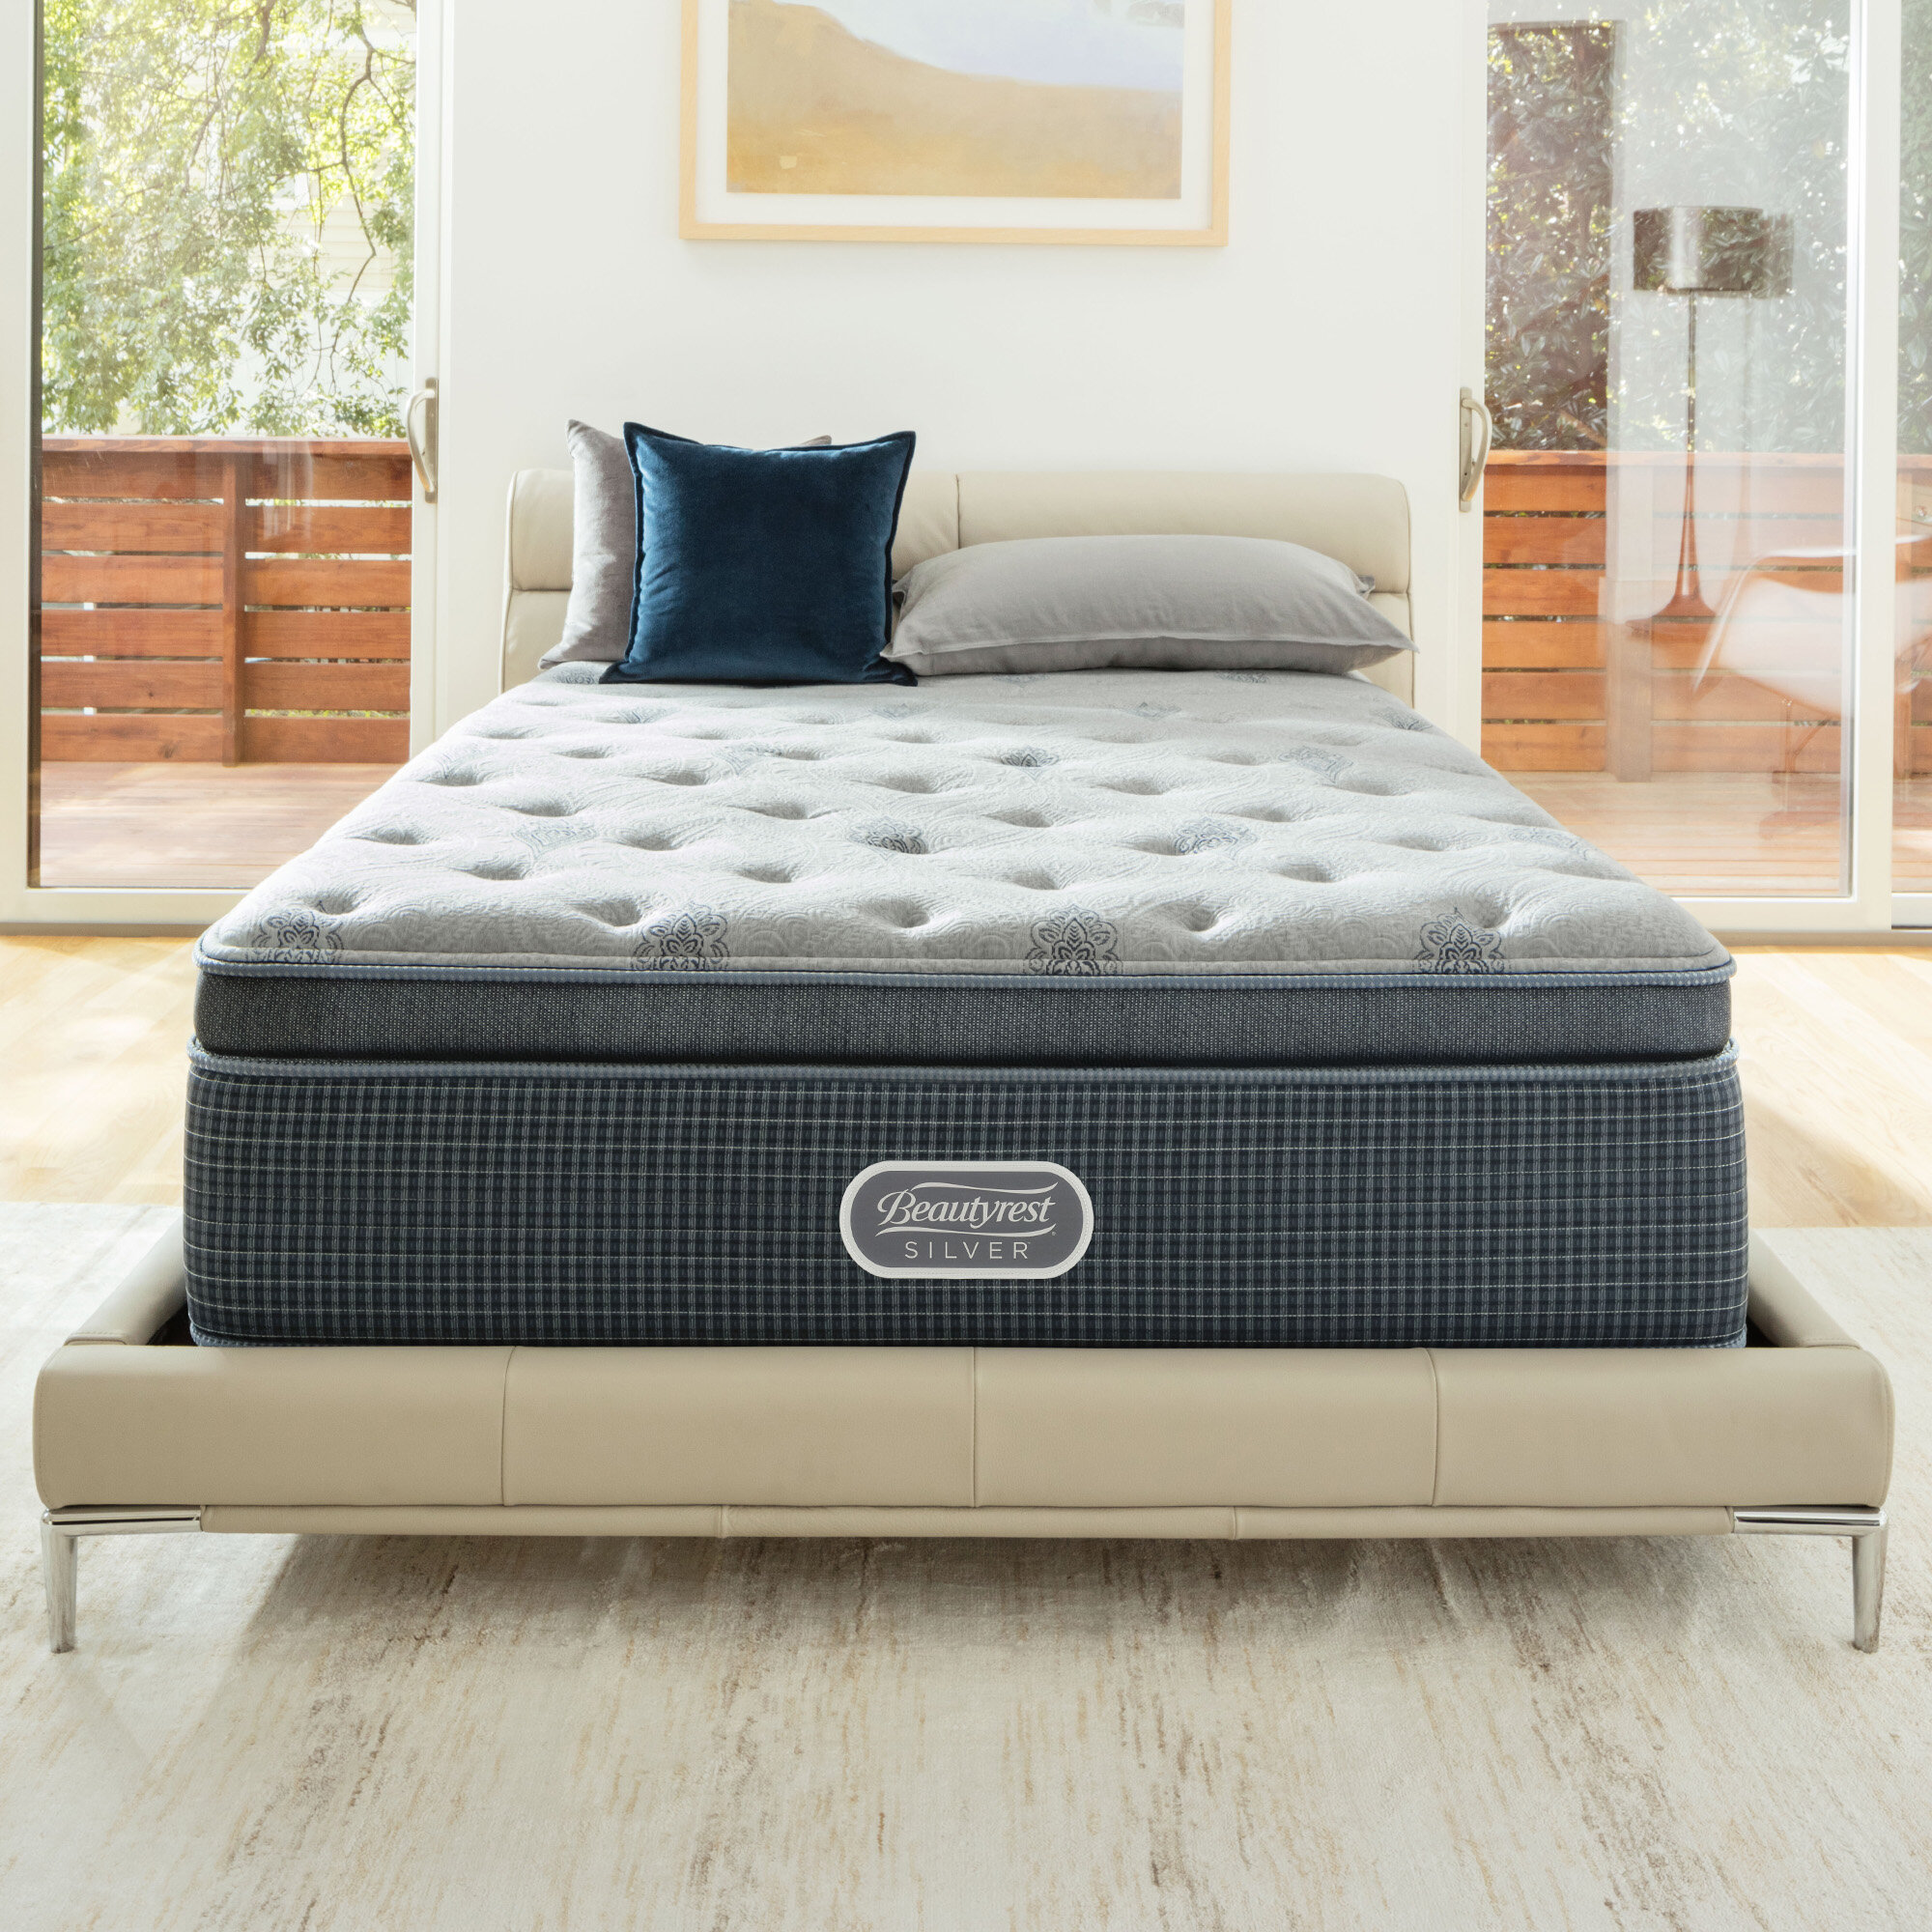 with dp sleep and kitchen mattress memory innovations foam top the year a in warranty com amazon size home queen made fiber pillow instant usa topper